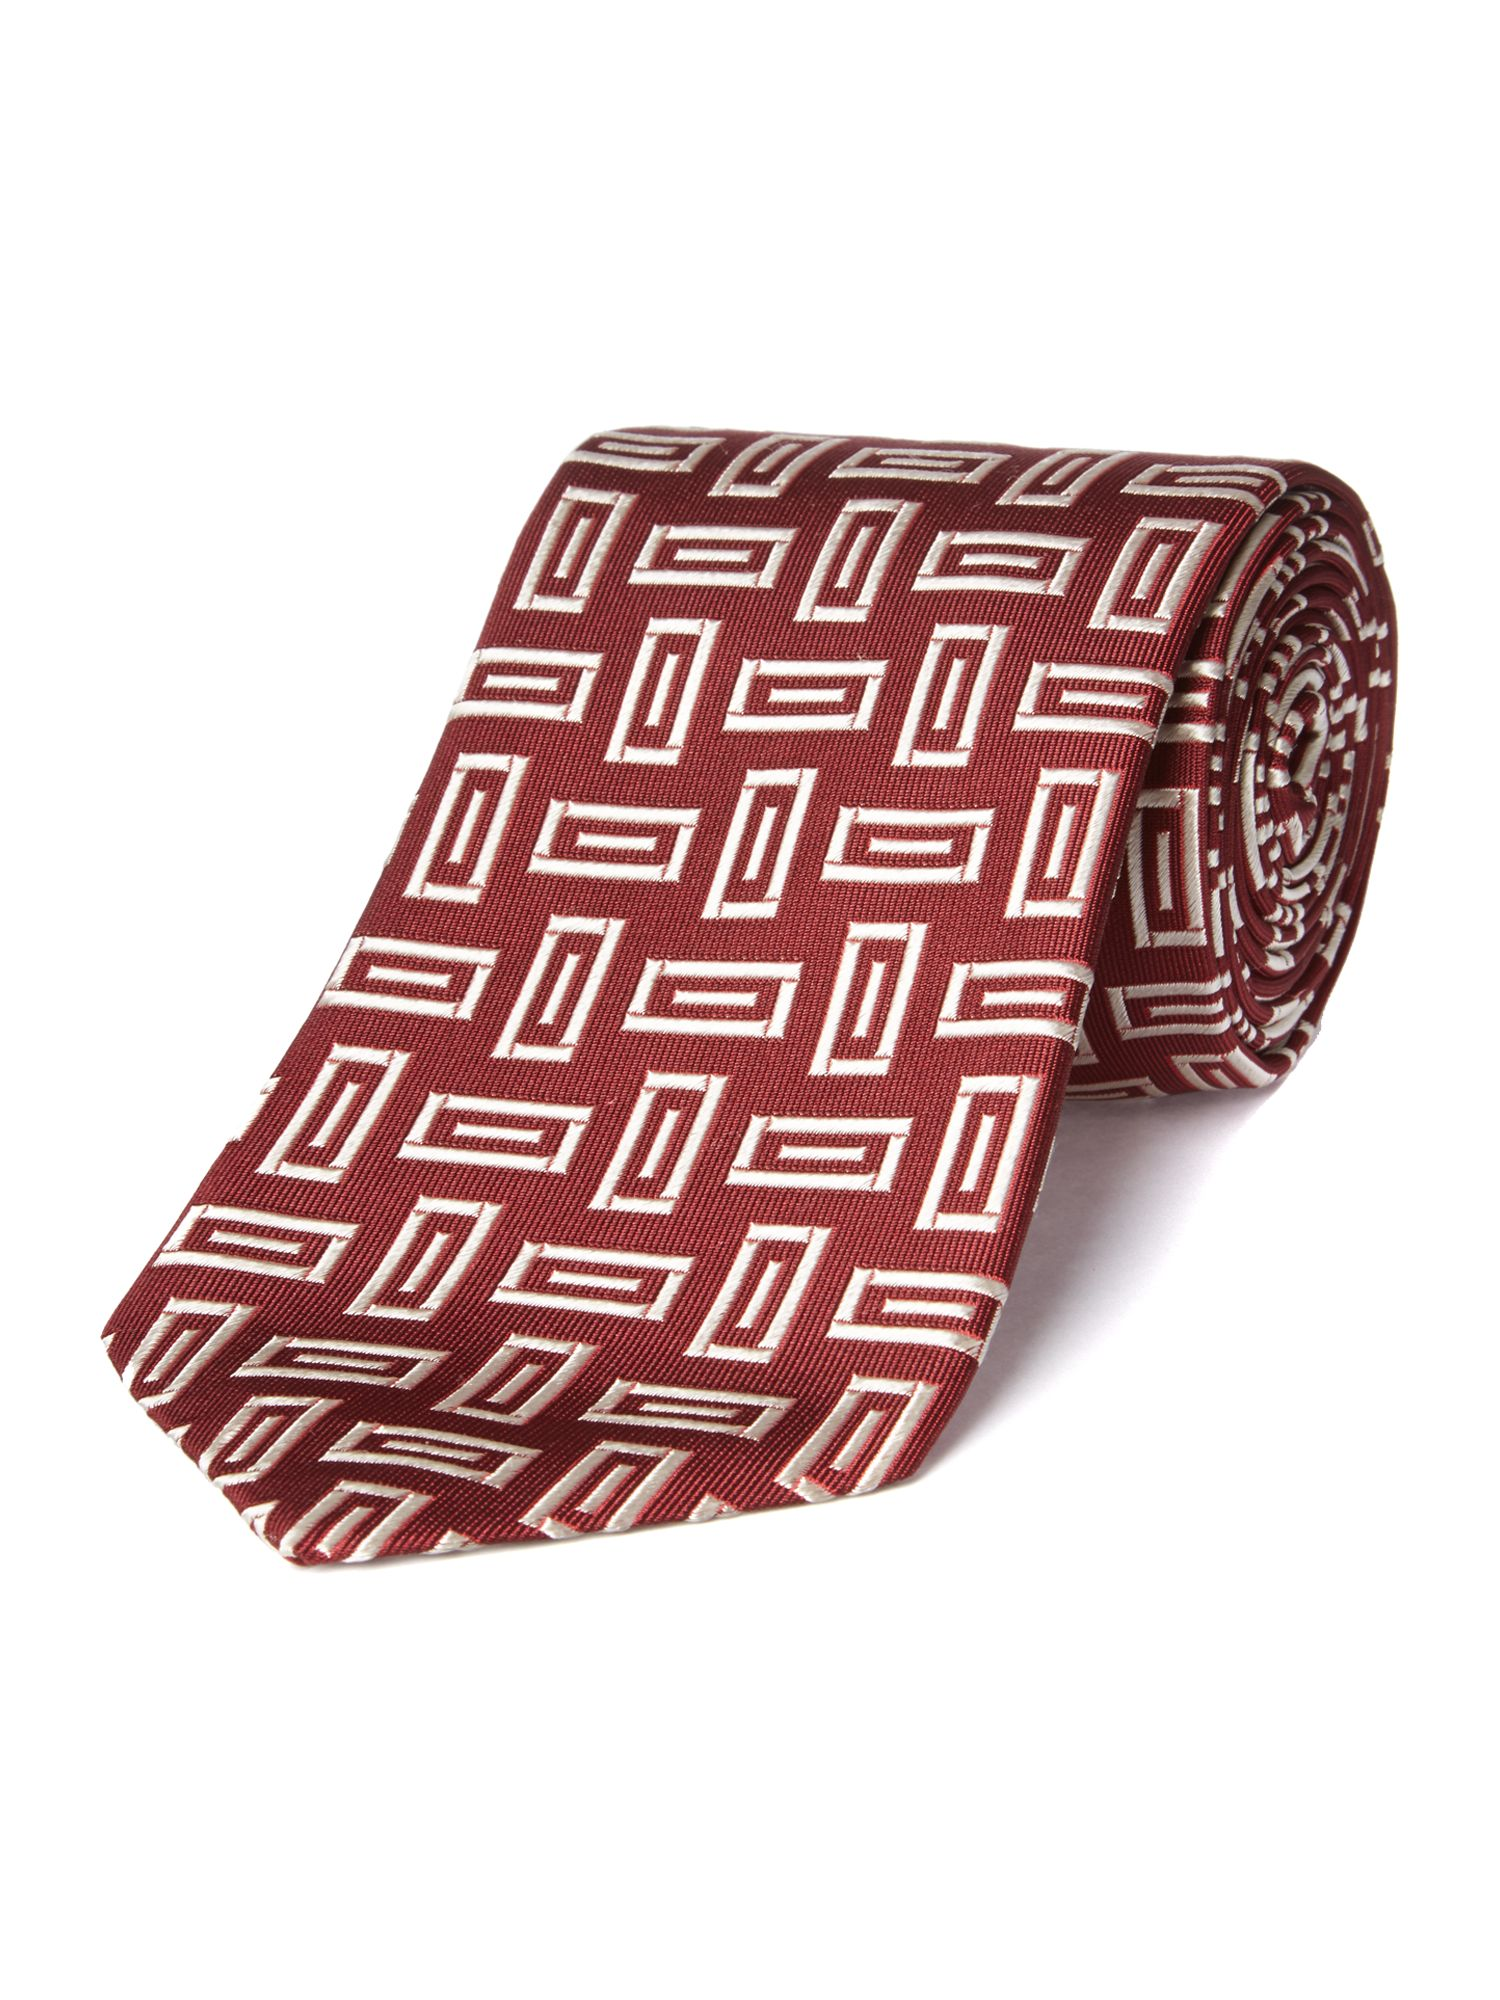 Chester Barrie Woven brick tie $39.00 AT vintagedancer.com